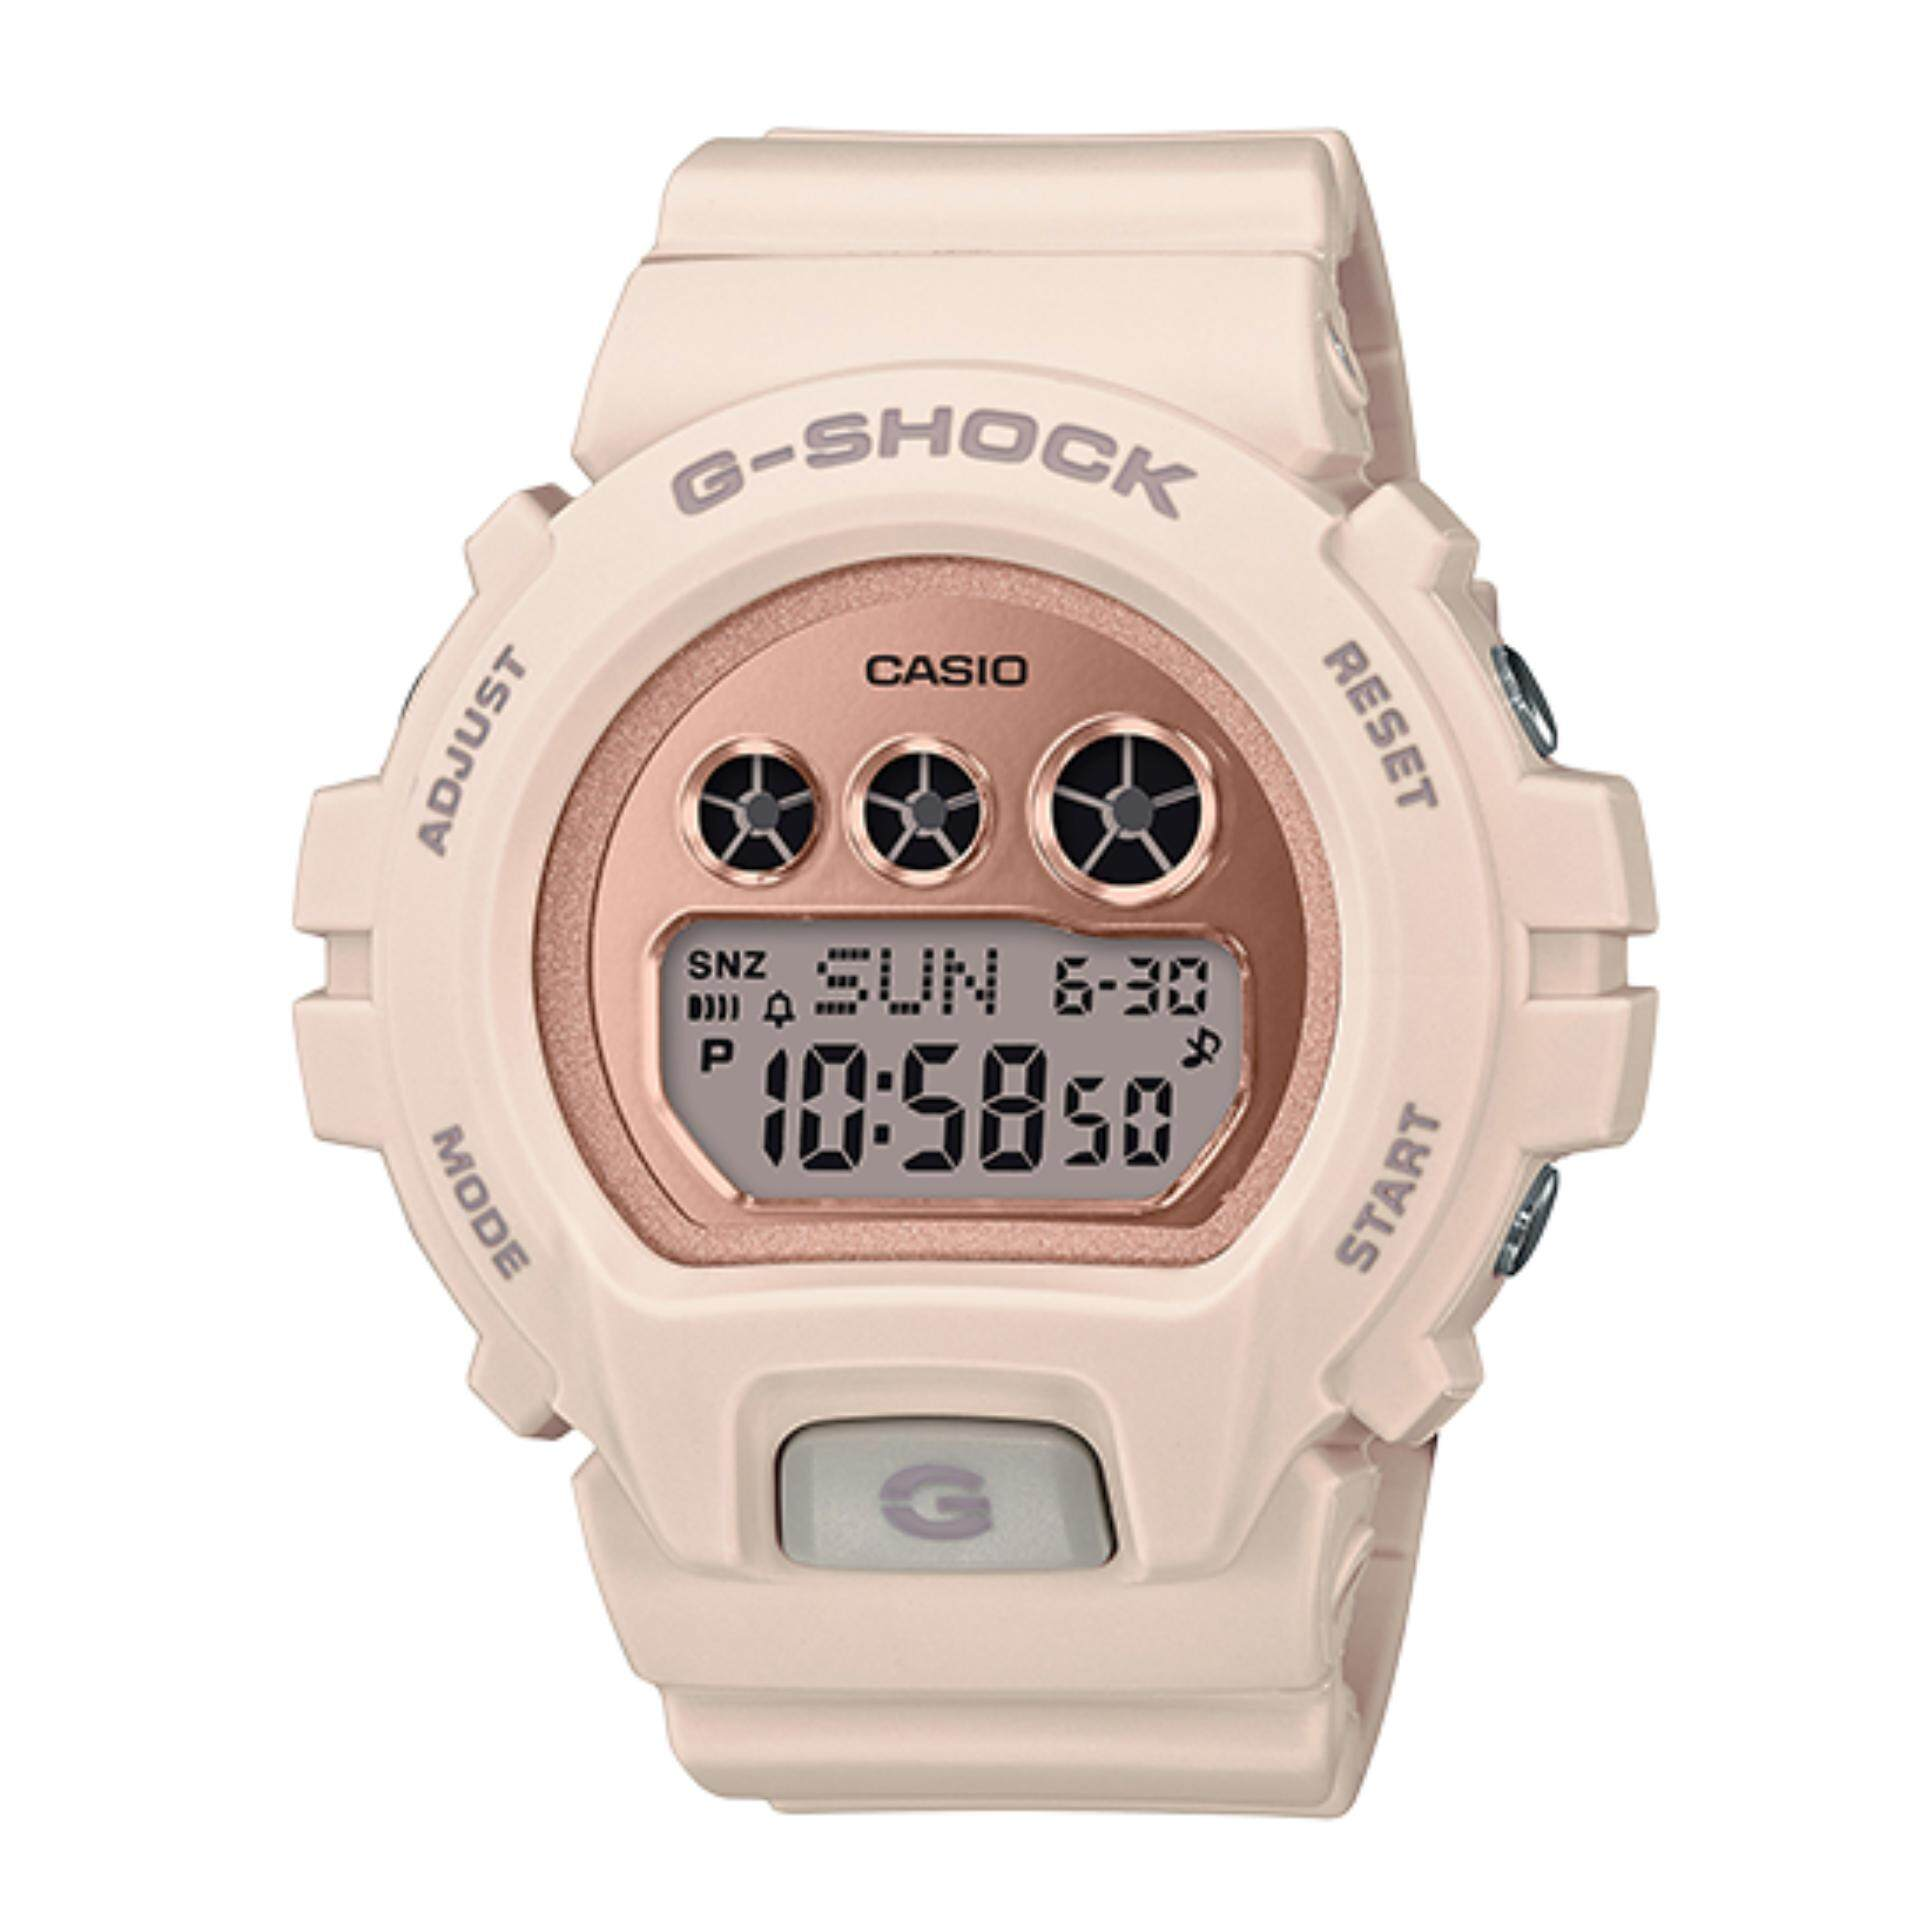 Casio G Shock Watches With Best Price At Lazada Malaysia Jam Tangan Pria Gd 350 1b Original Mens Pink Resin Strap Watch Gmd S6900mc 4